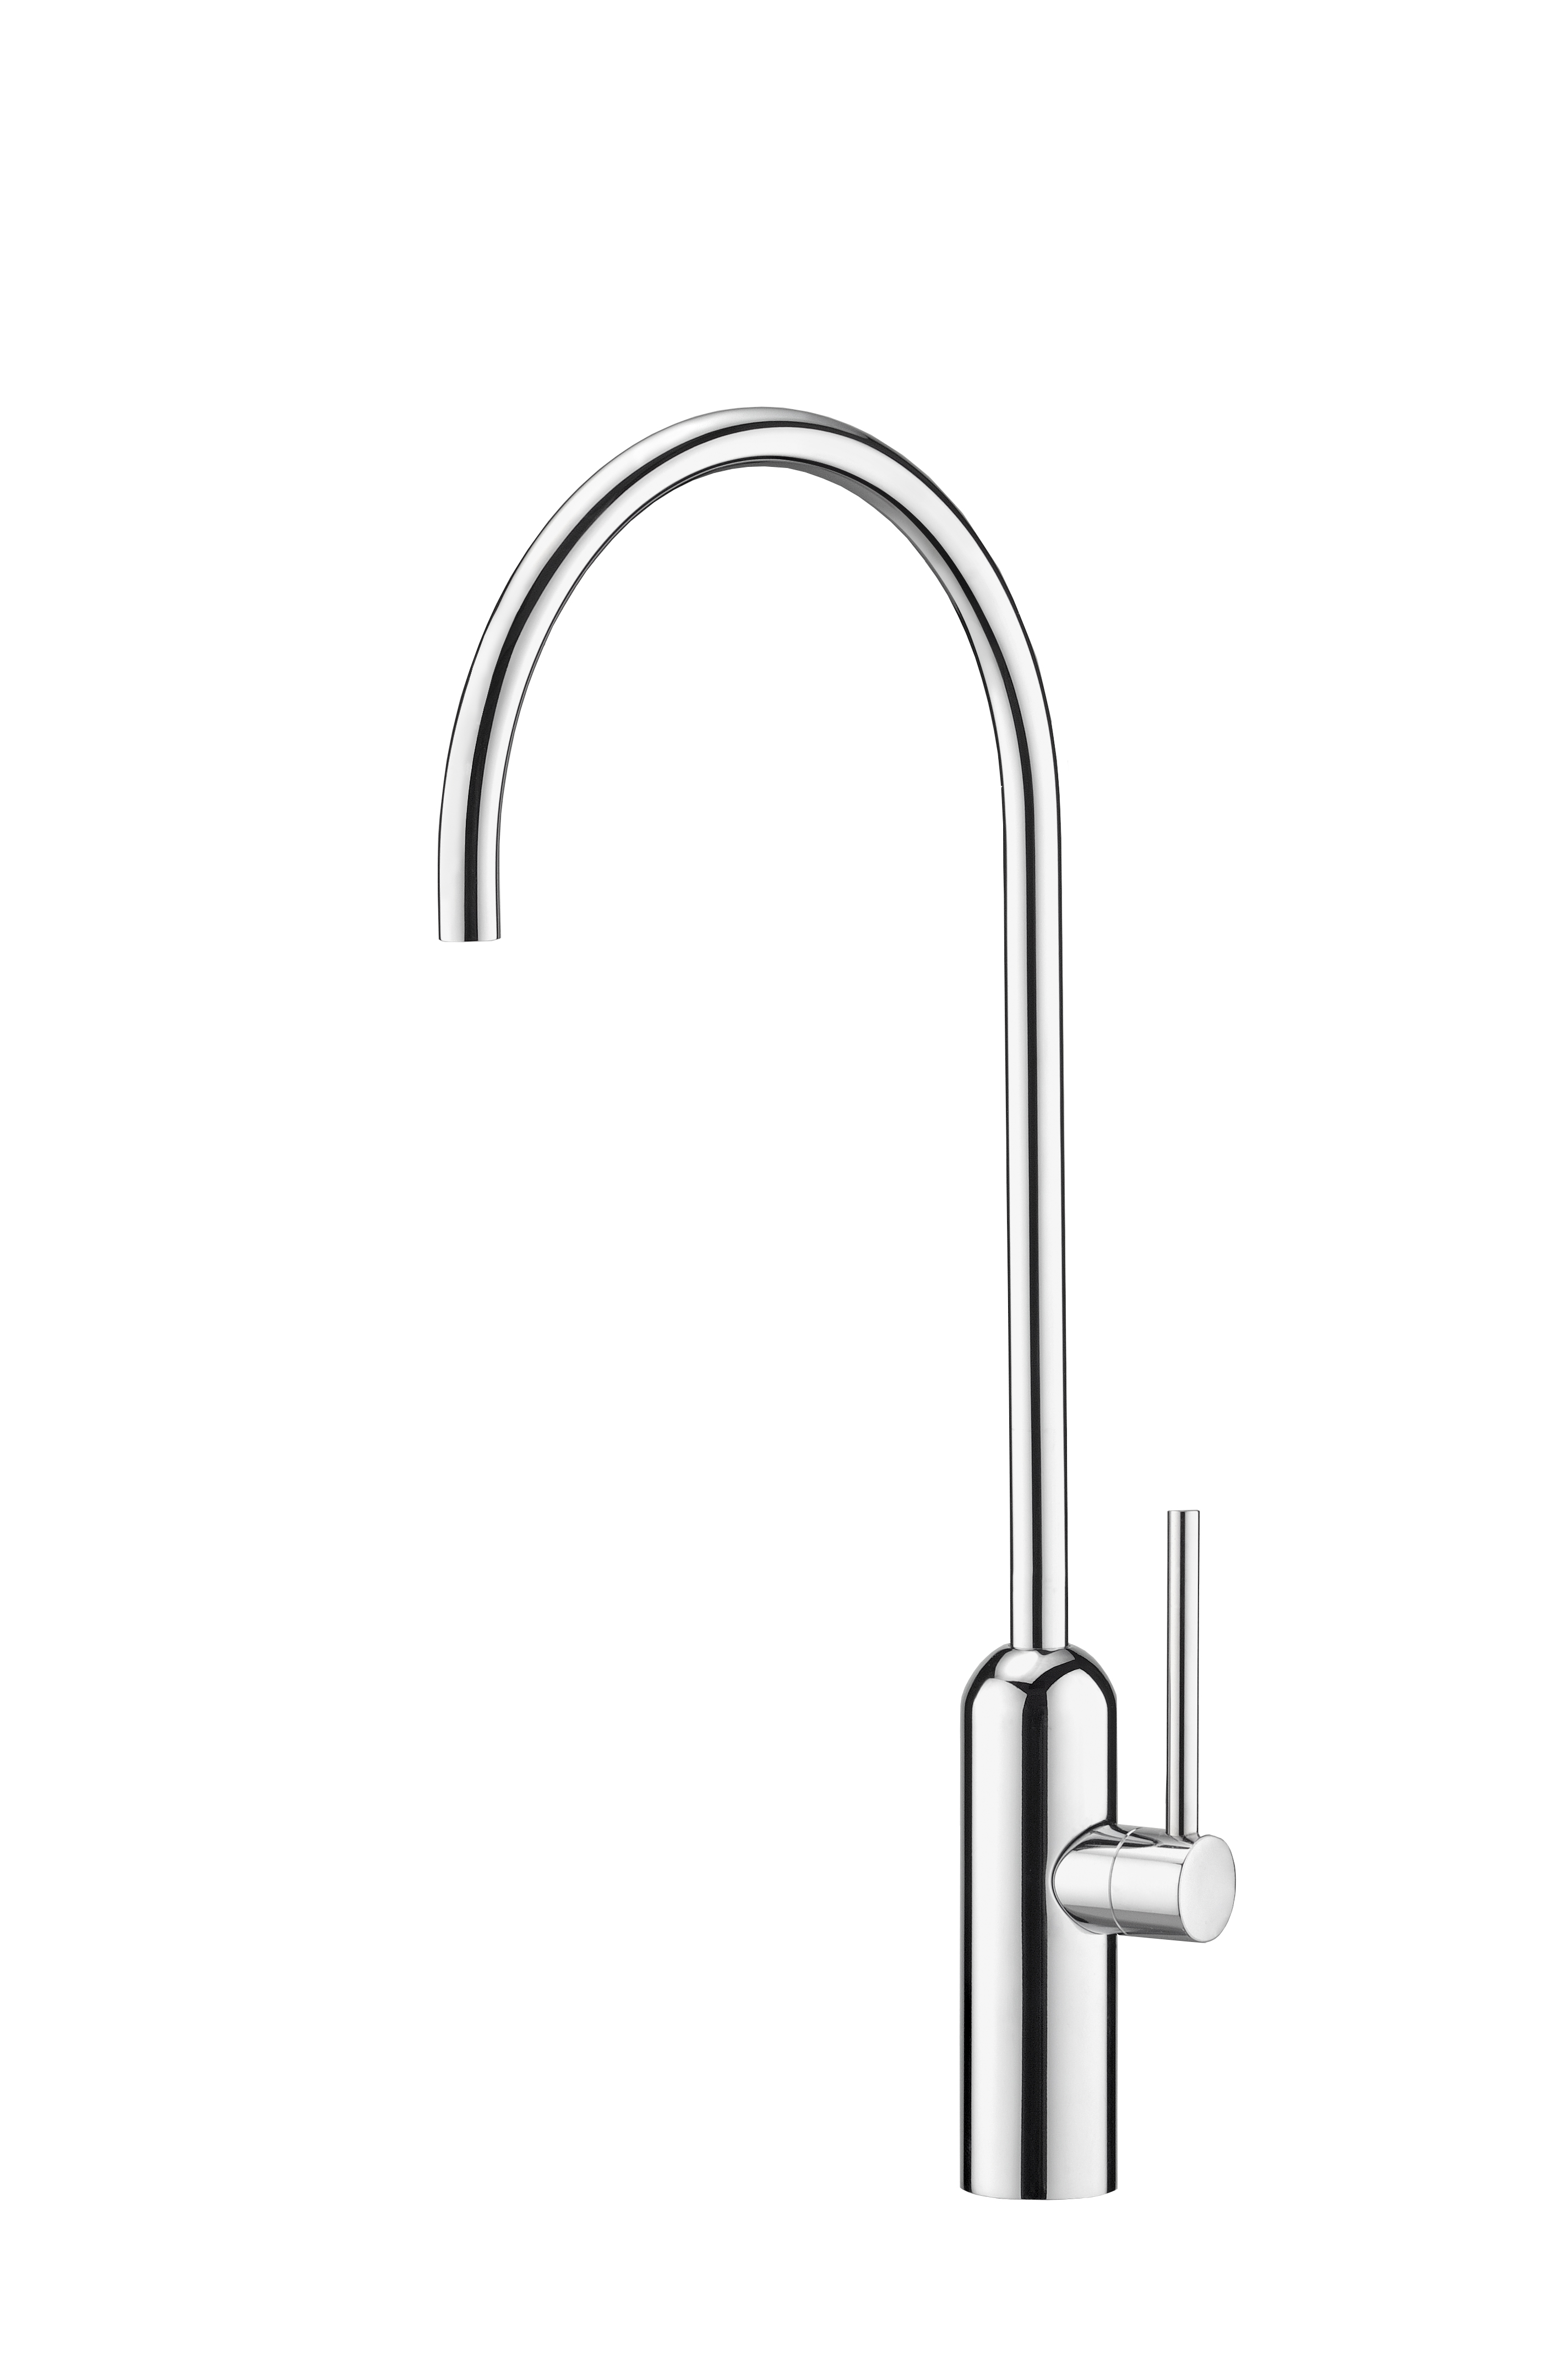 SHENG TAI BRASSWARE CO., LTD.-Water Drinking Faucet (Lead-Free Brass)(Cold Only)